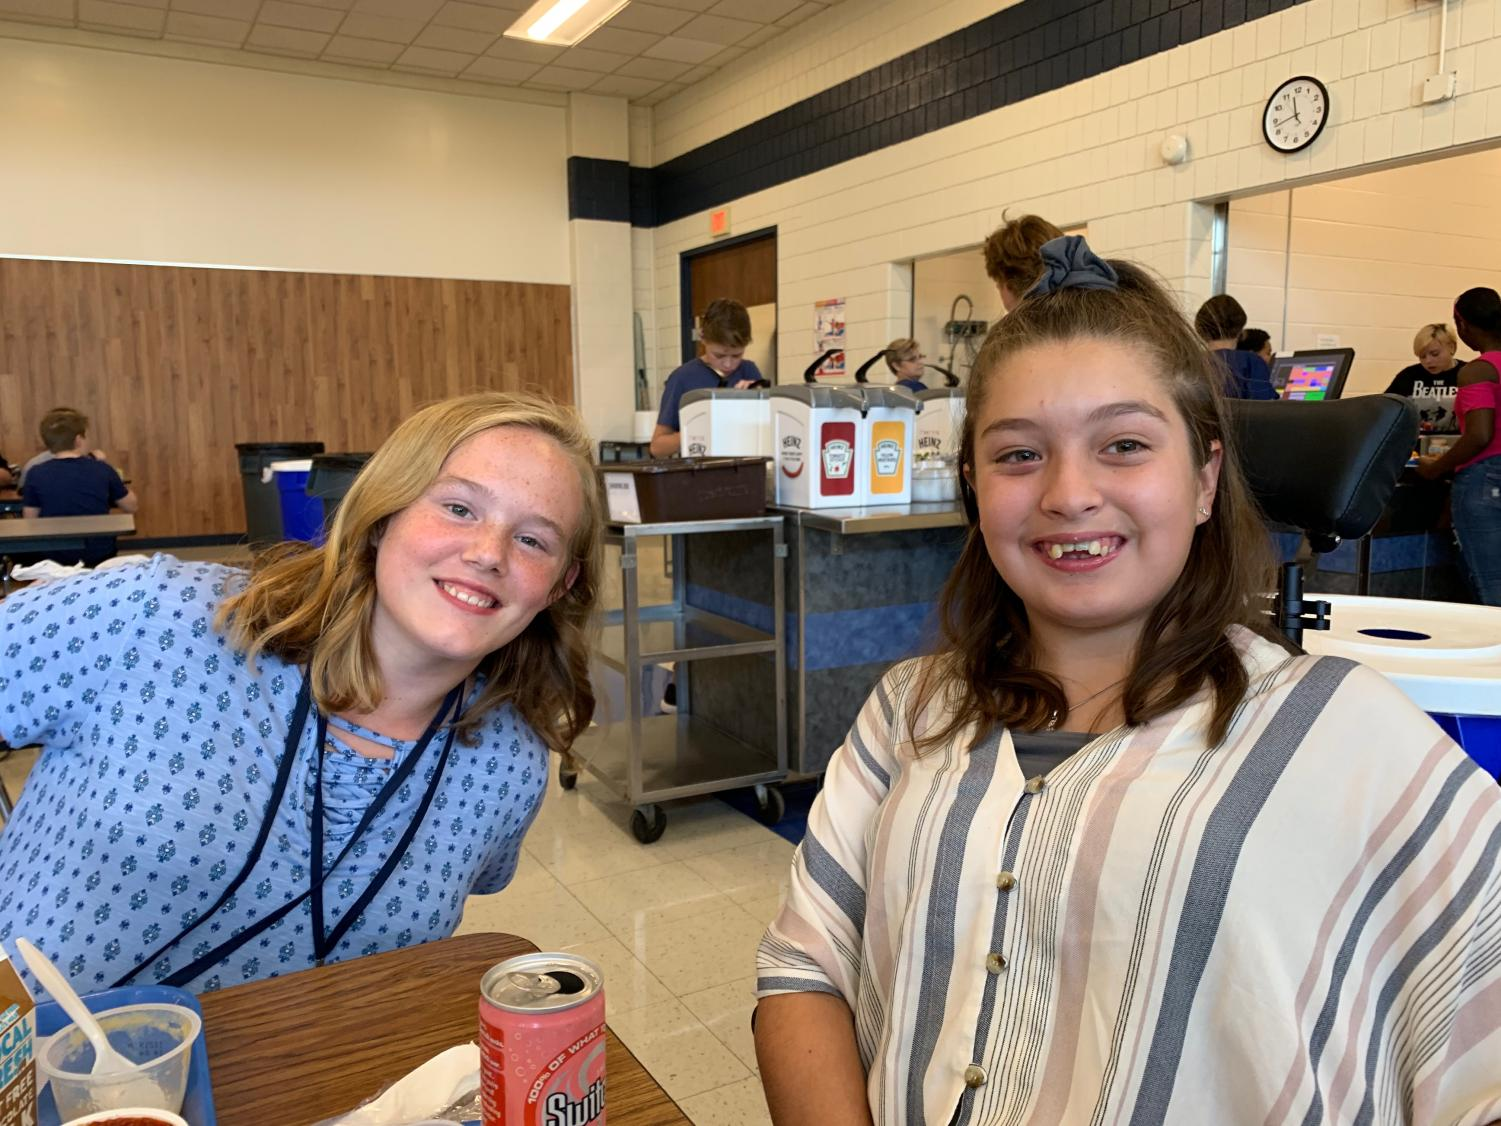 Jazzie Zupancic (left) and Madi Ramirez (right), the newest members of the PVJH Swim Team, enjoy lunch together at the junior high.